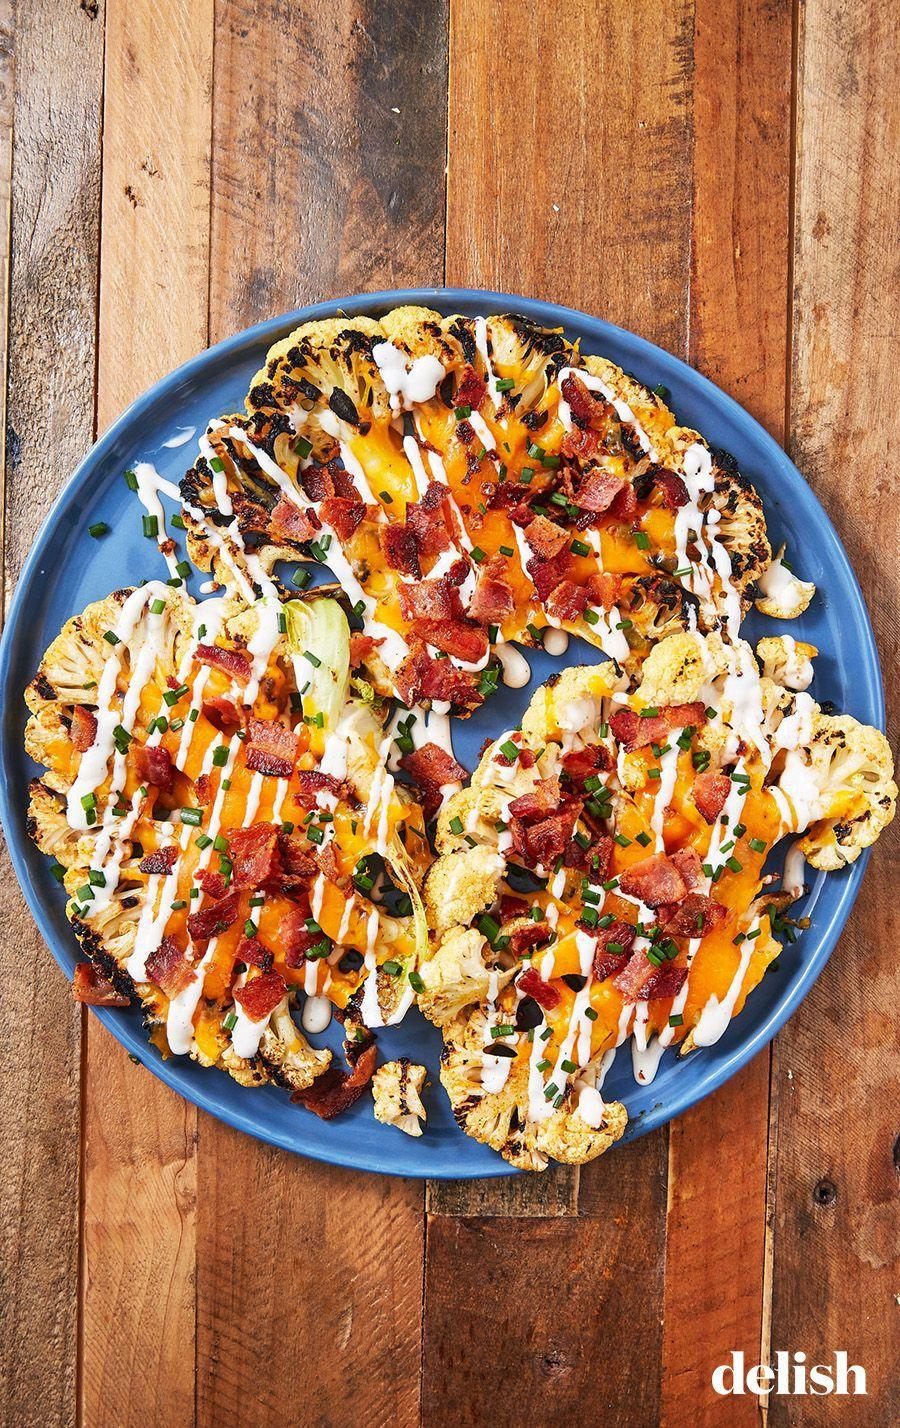 "<p>Low carb, BIG flavor.</p><p>Get the recipe from <a href=""https://www.delish.com/cooking/recipe-ideas/recipes/a54879/loaded-grilled-cauliflower-recipe/"" rel=""nofollow noopener"" target=""_blank"" data-ylk=""slk:Delish"" class=""link rapid-noclick-resp"">Delish</a>.</p>"